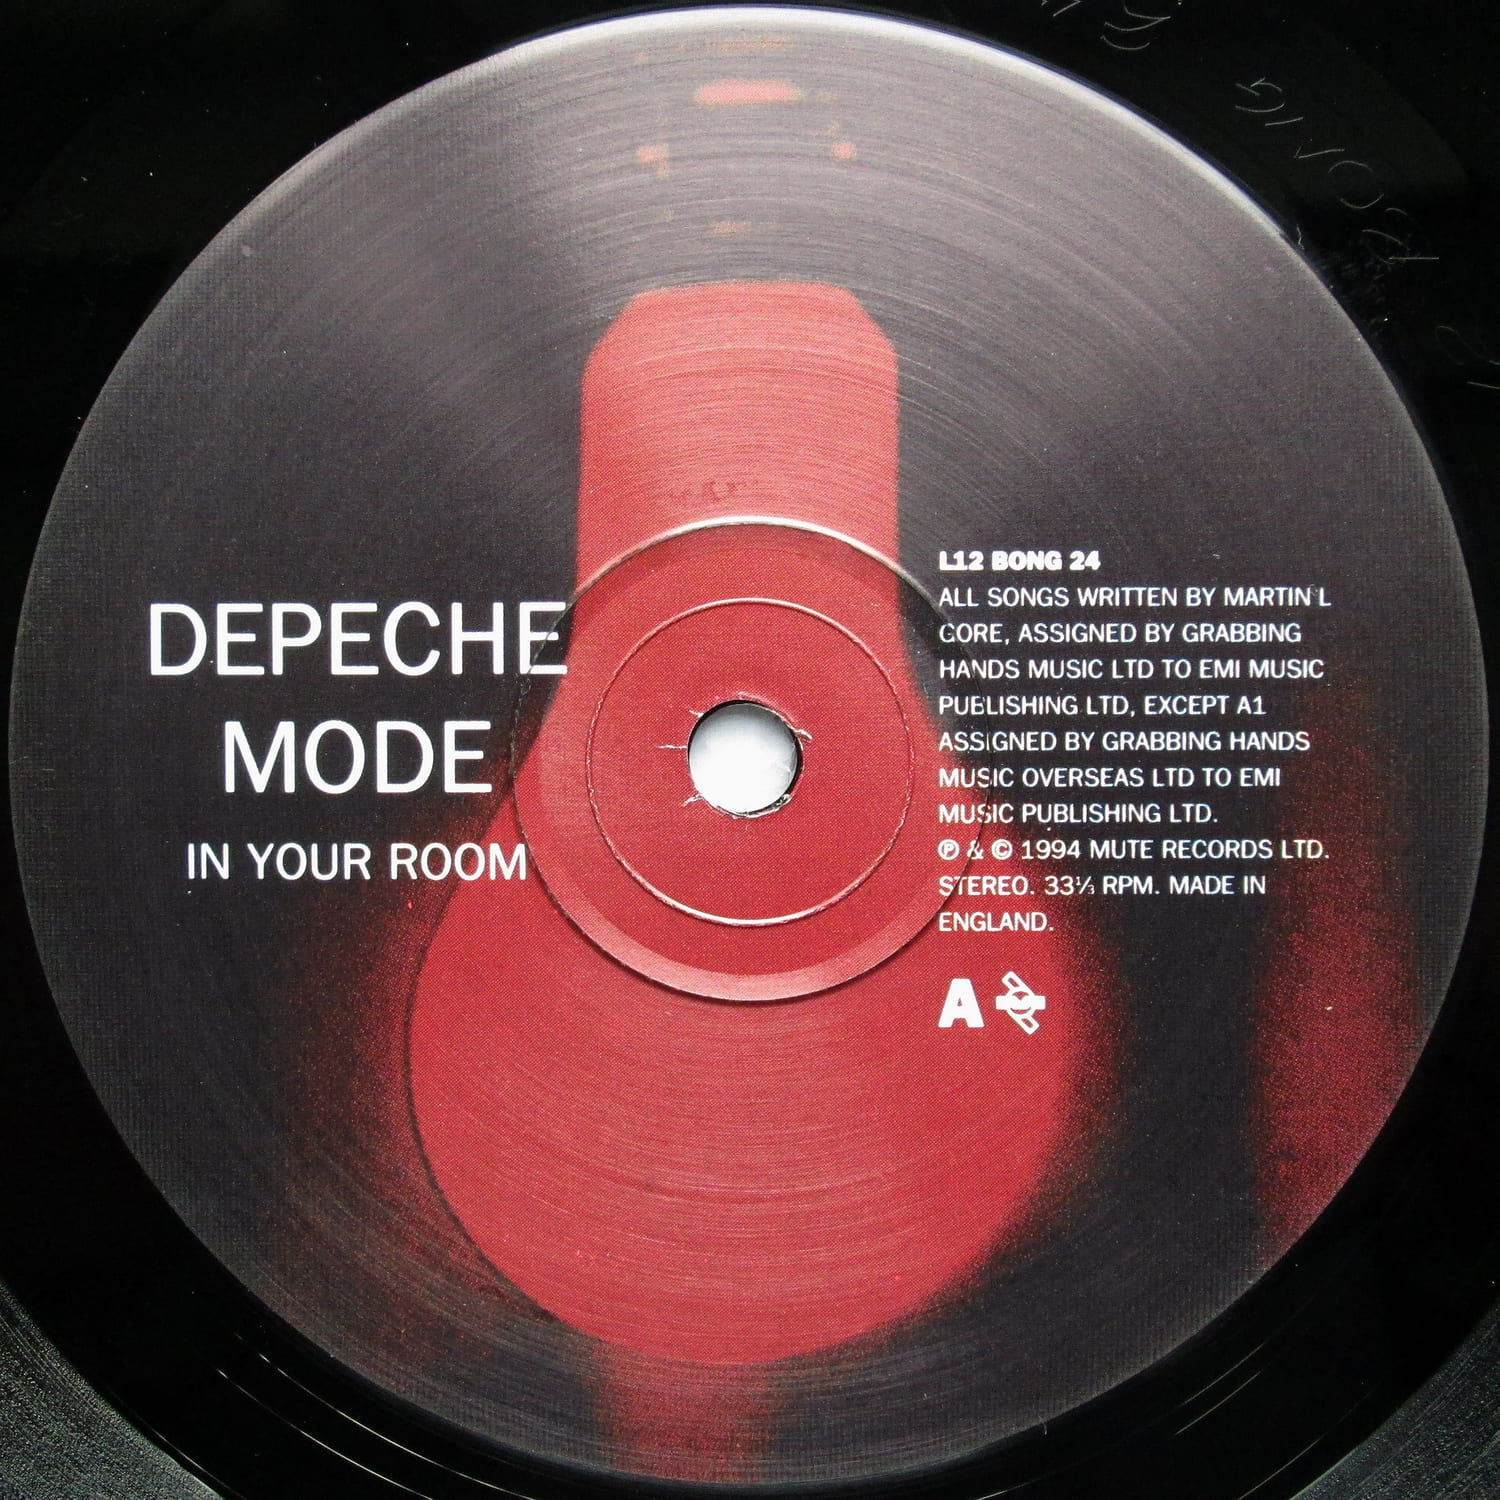 Depeche Mode In Your Room 1993